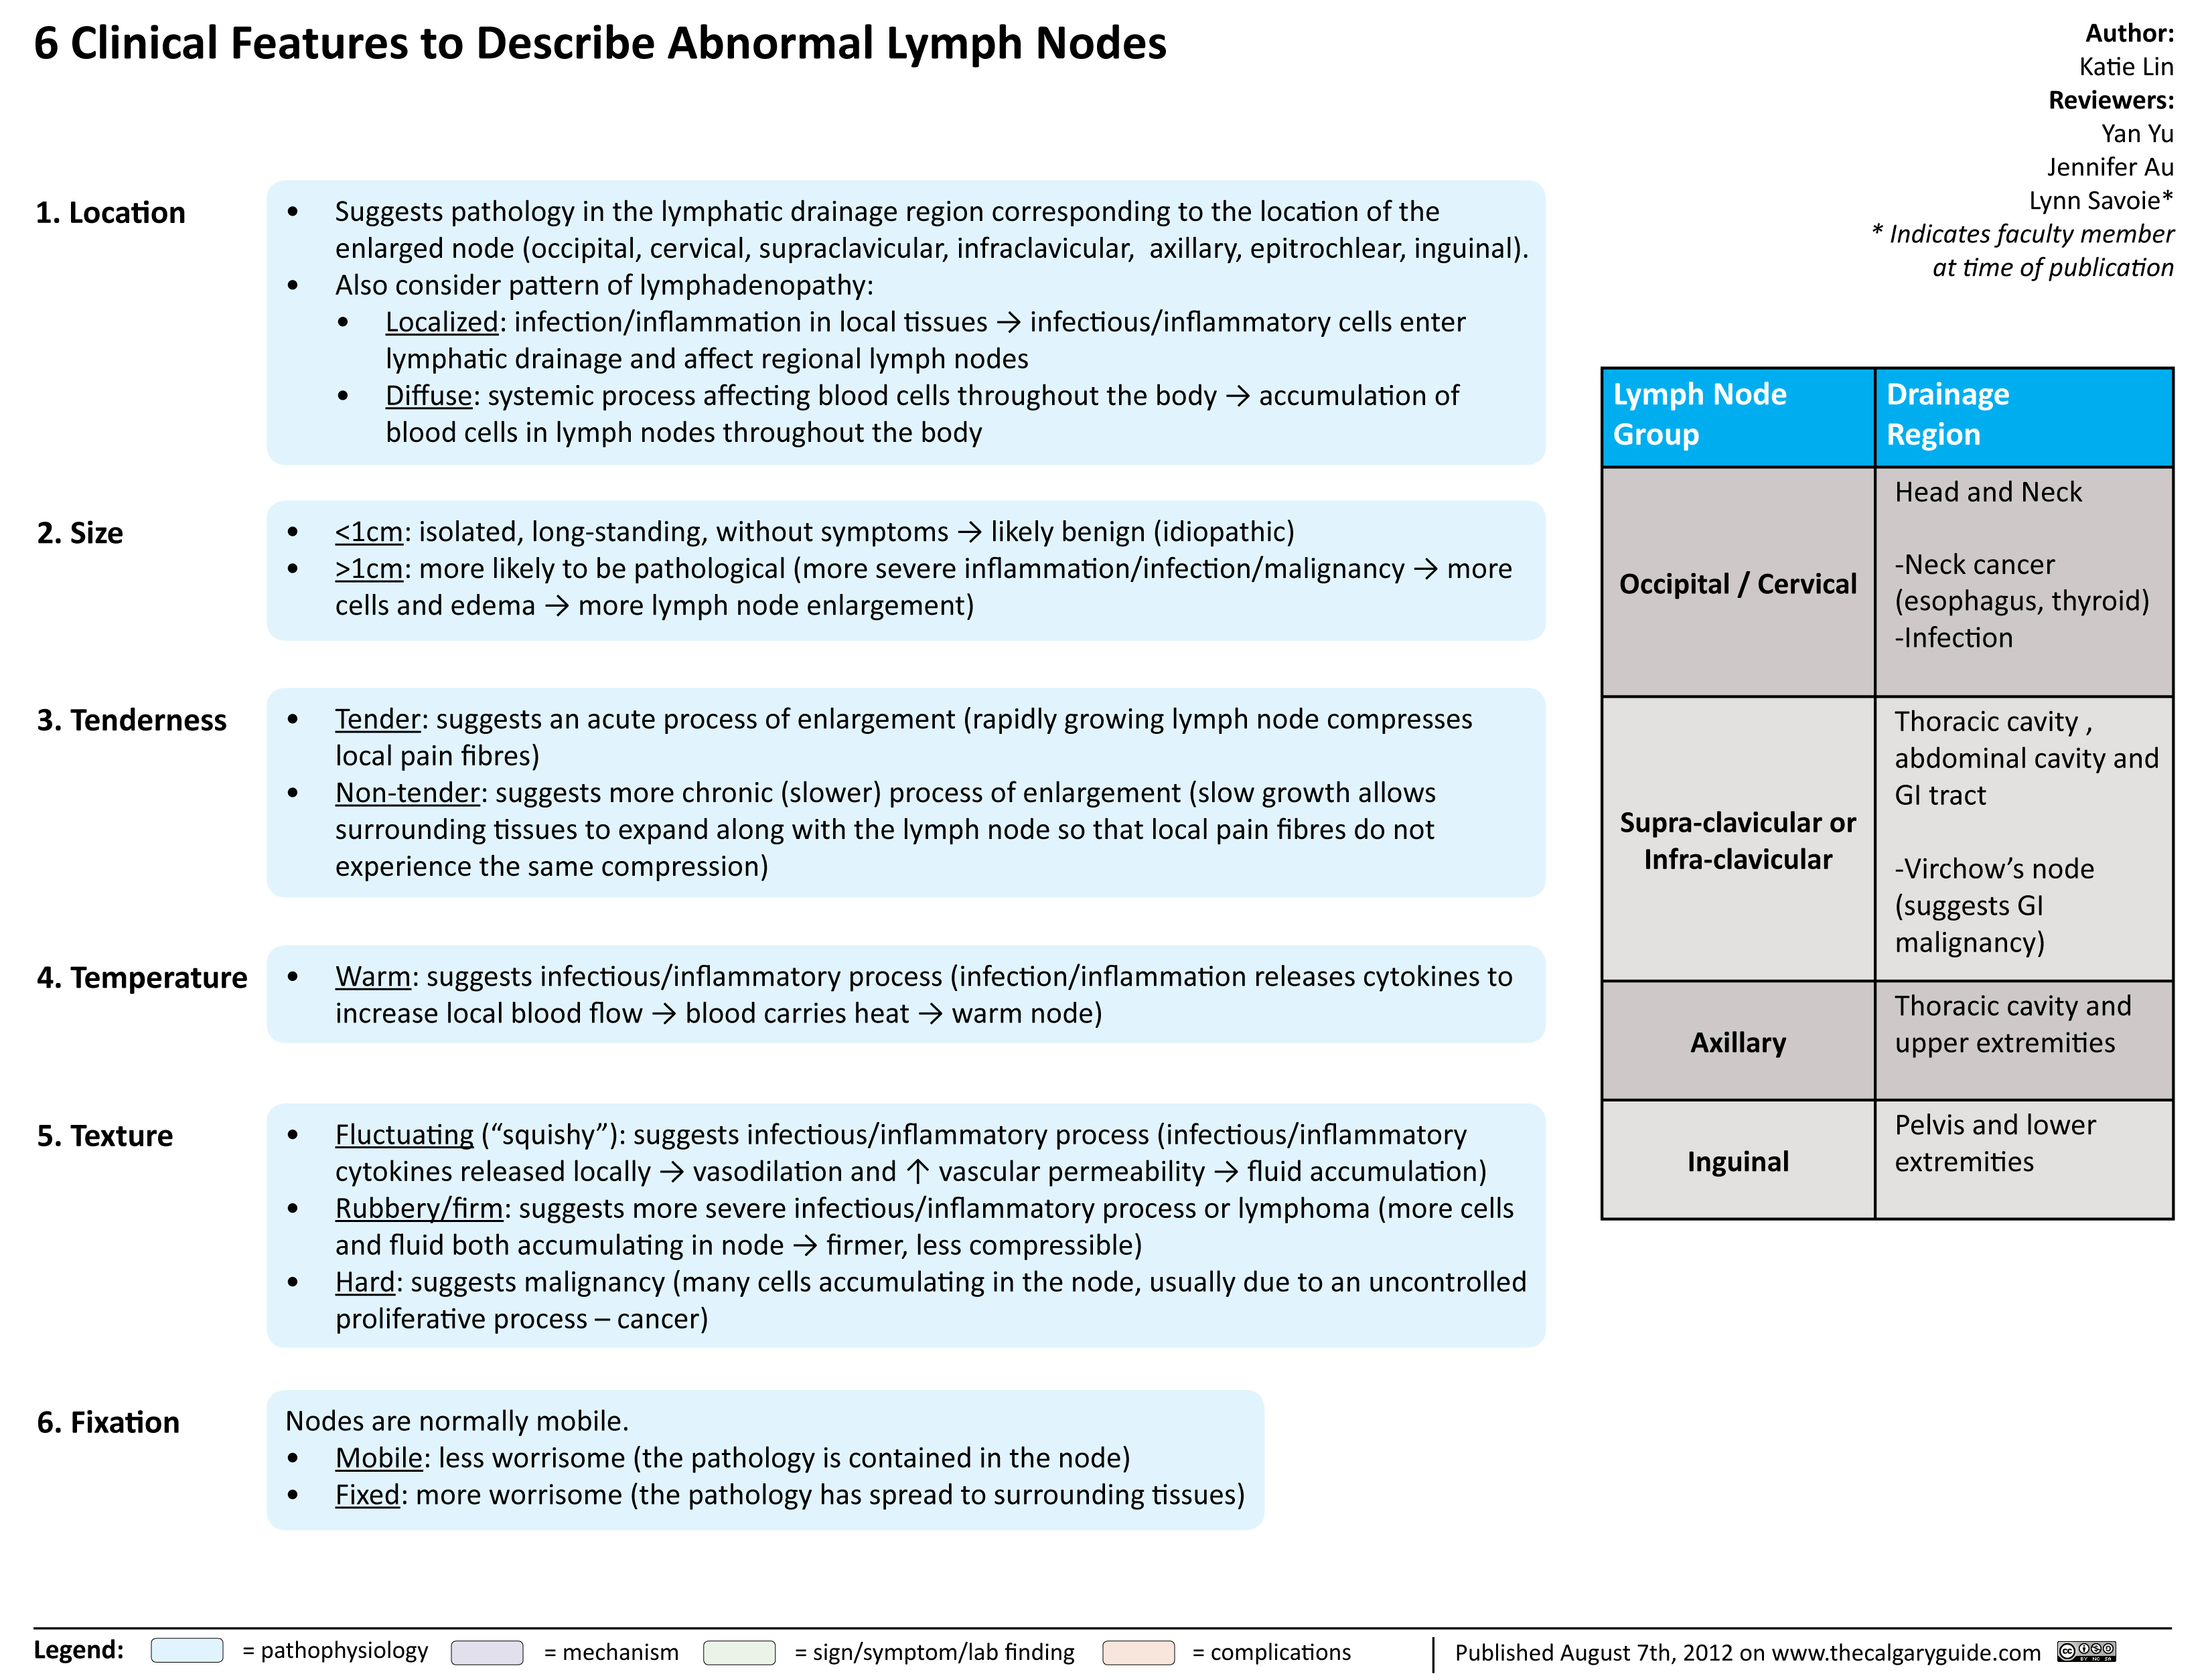 Clinical Features to Describe Abnormal Lymph Nodes